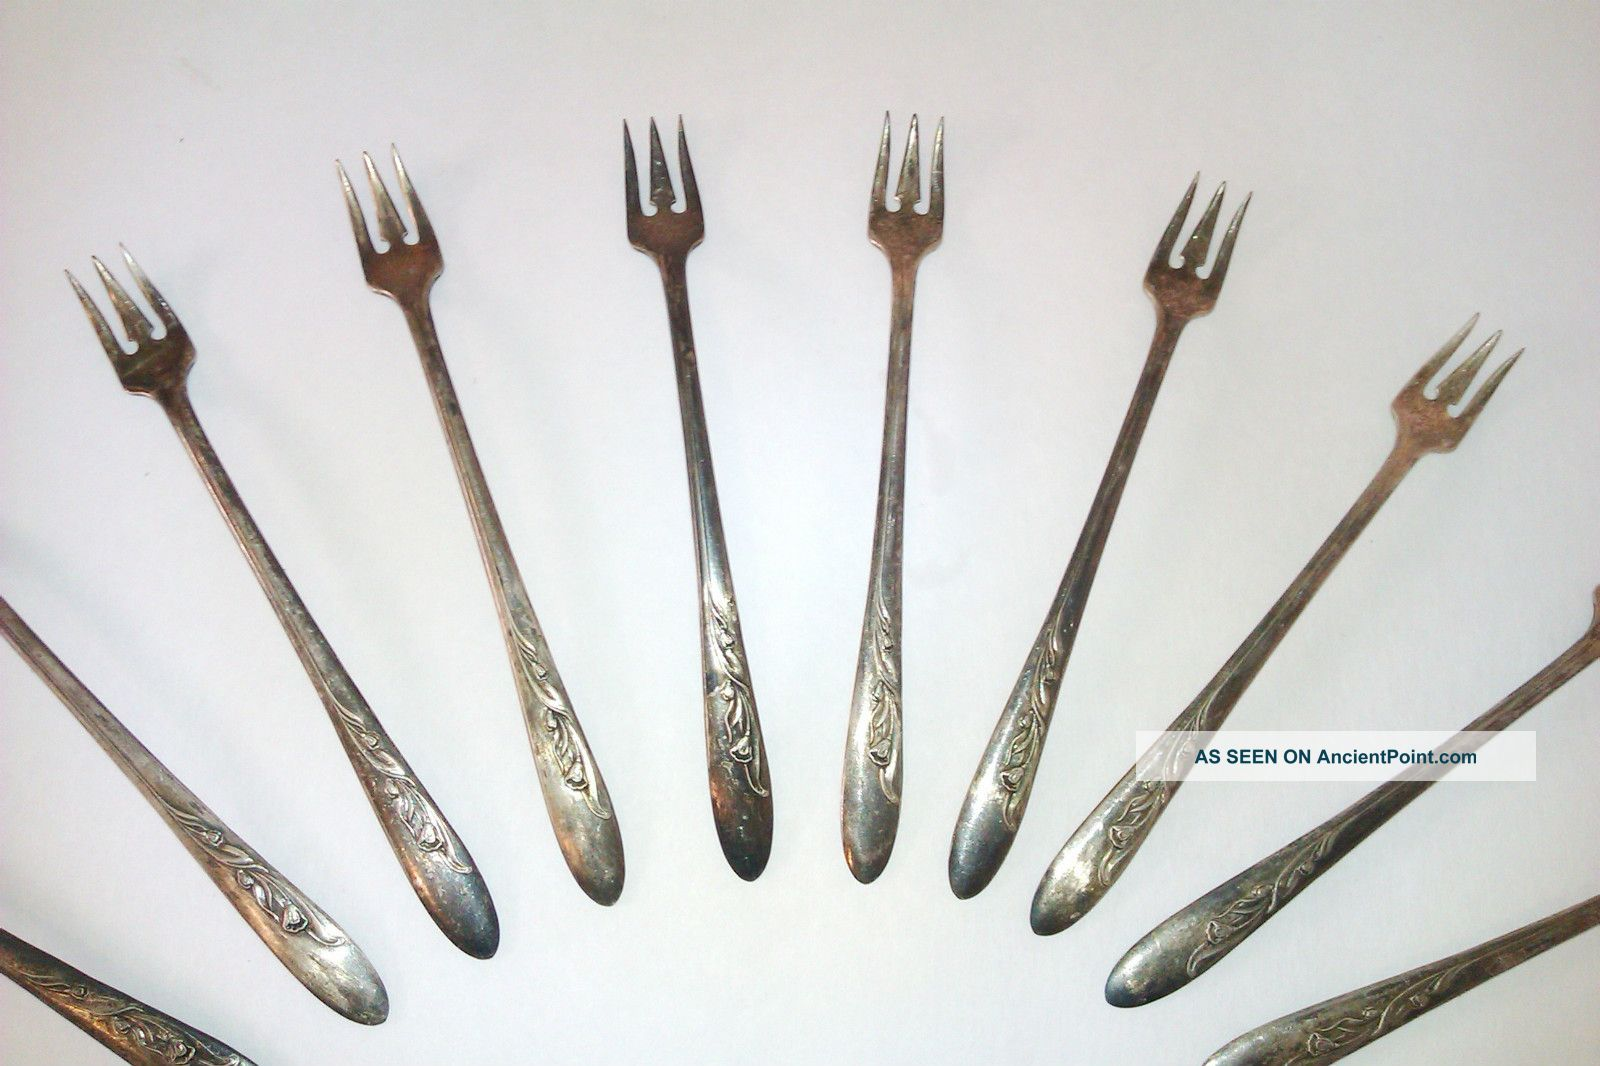 1957 Cherie By Carlton Silver Plated Cocktail Forks - Vintage Collectible Other photo